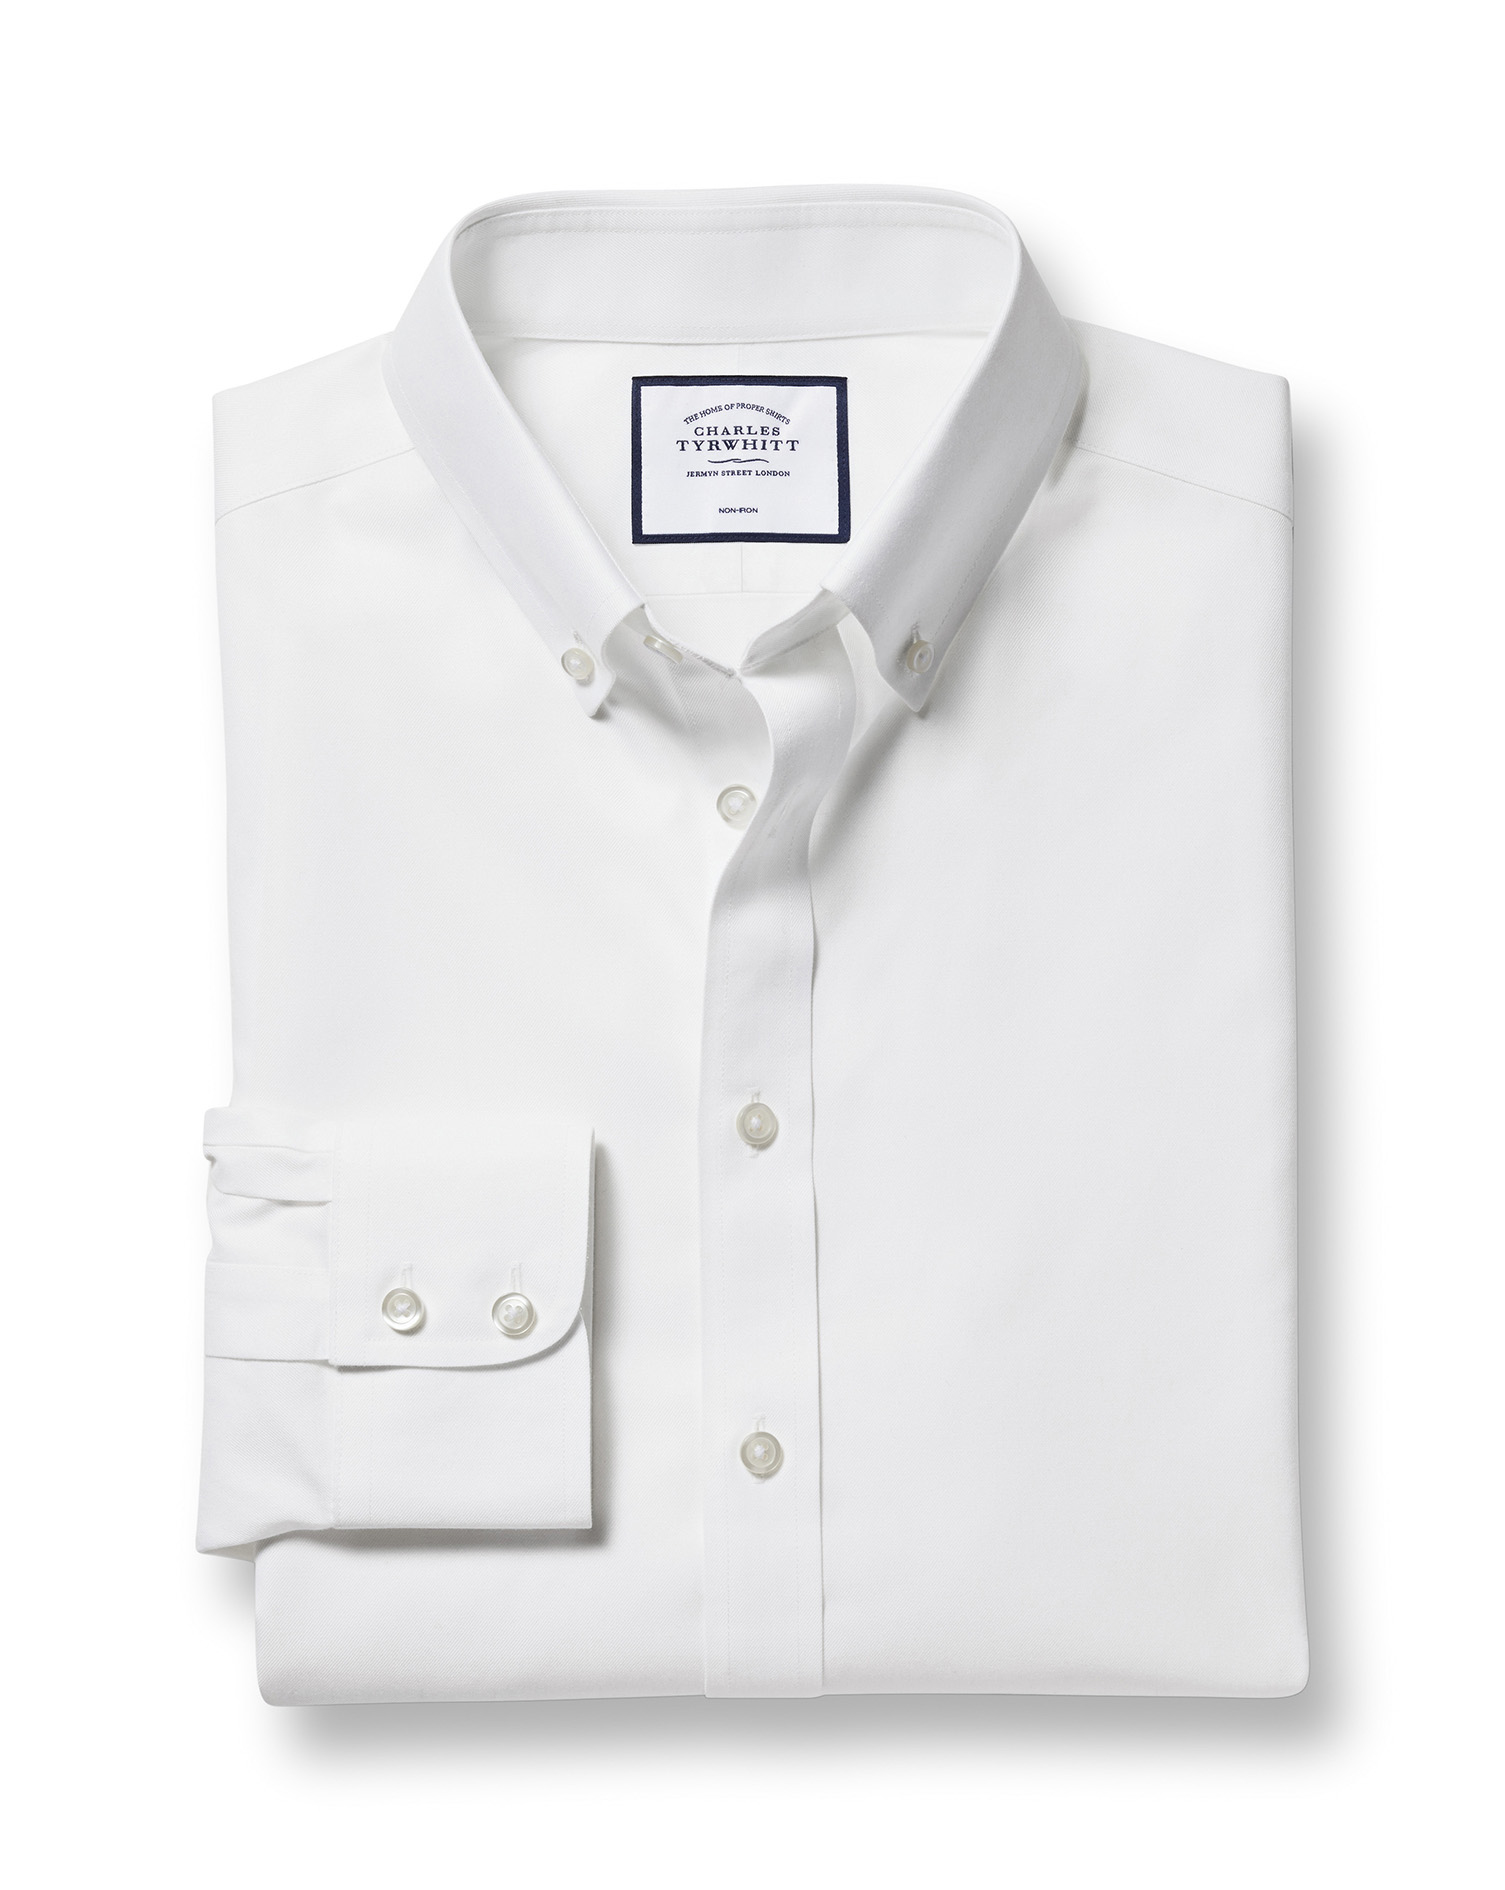 Classic Fit Button-Down Non-Iron Twill White Cotton Formal Shirt Single Cuff Size 18/38 by Charles T